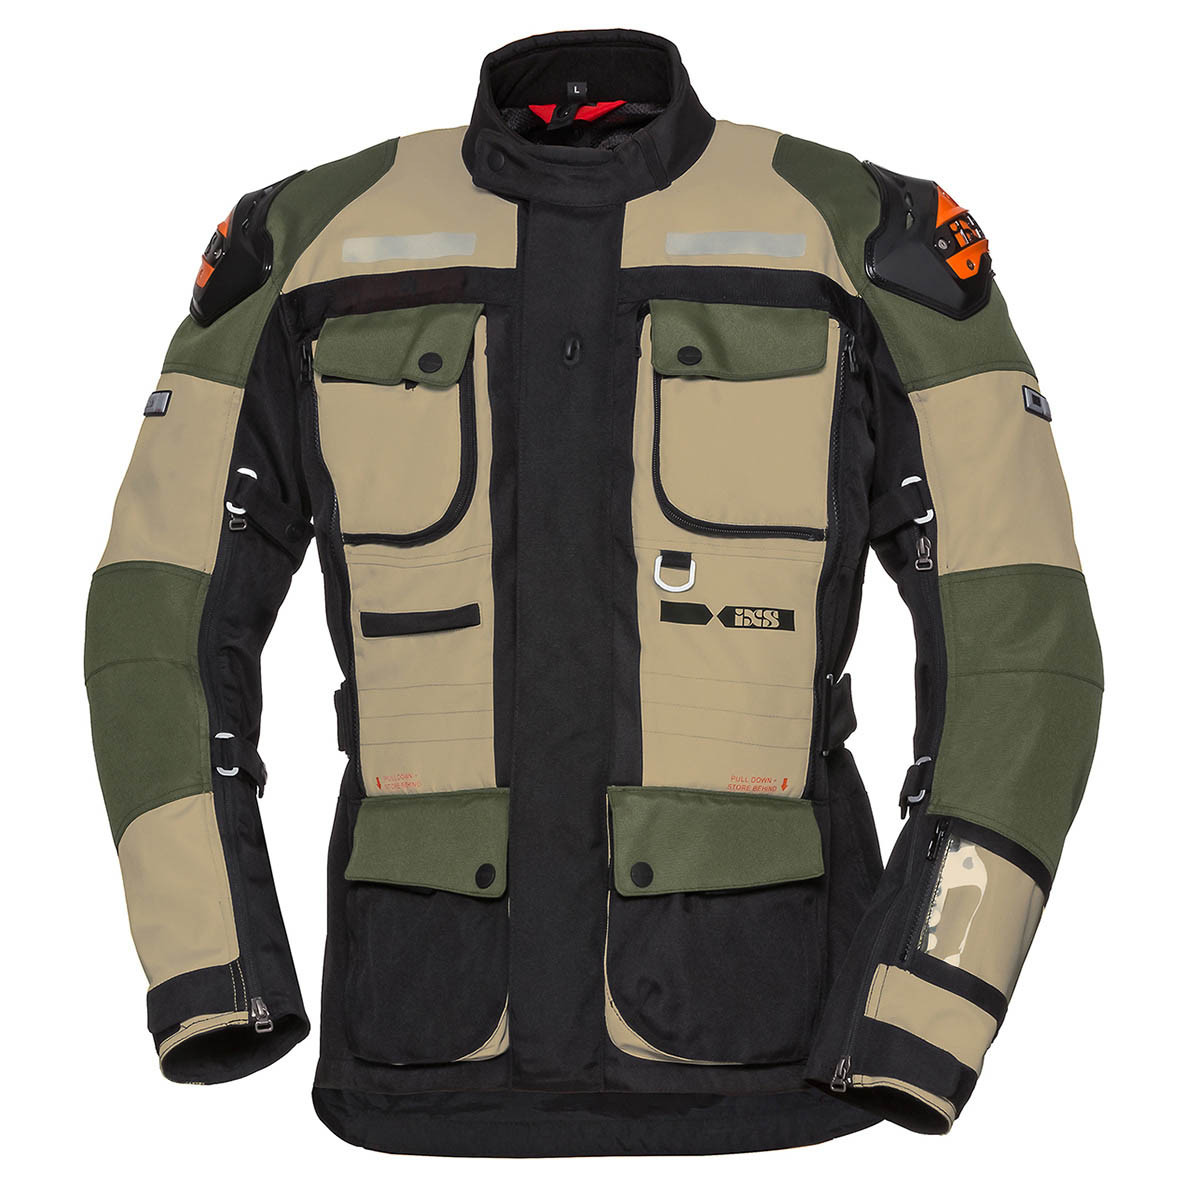 MONTEVIDEO RS1000 JACKET